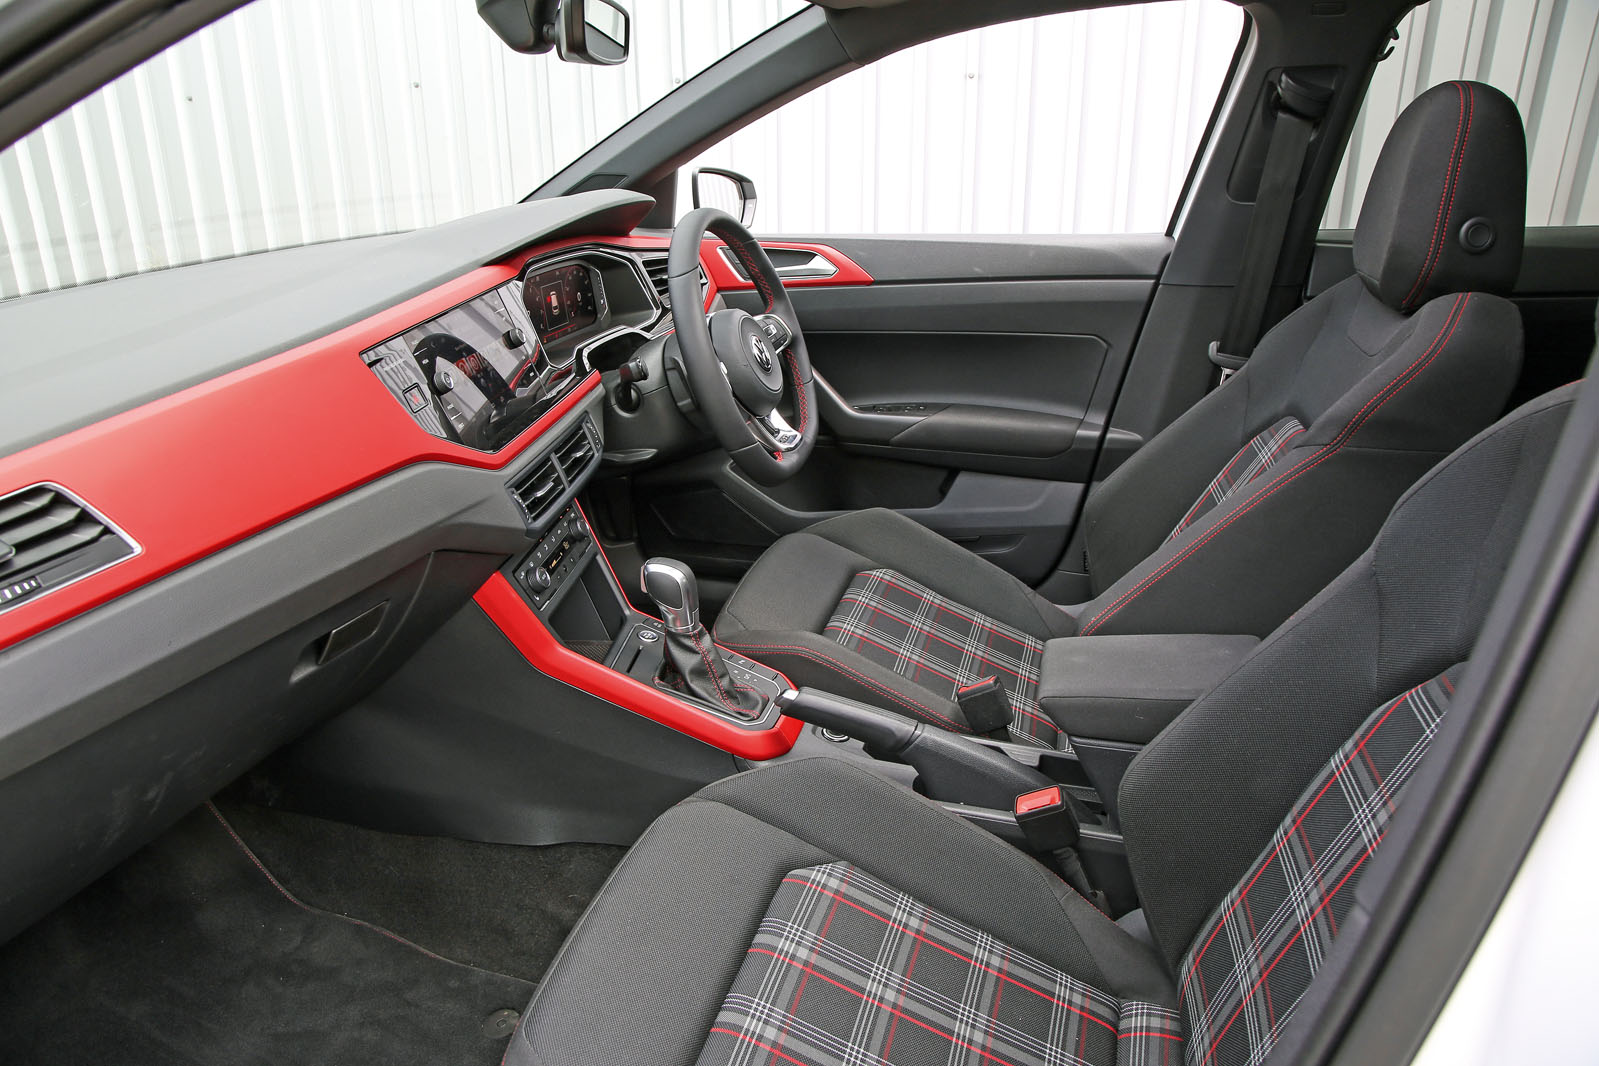 Volkswagen Polo Gti Review 2021 Autocar